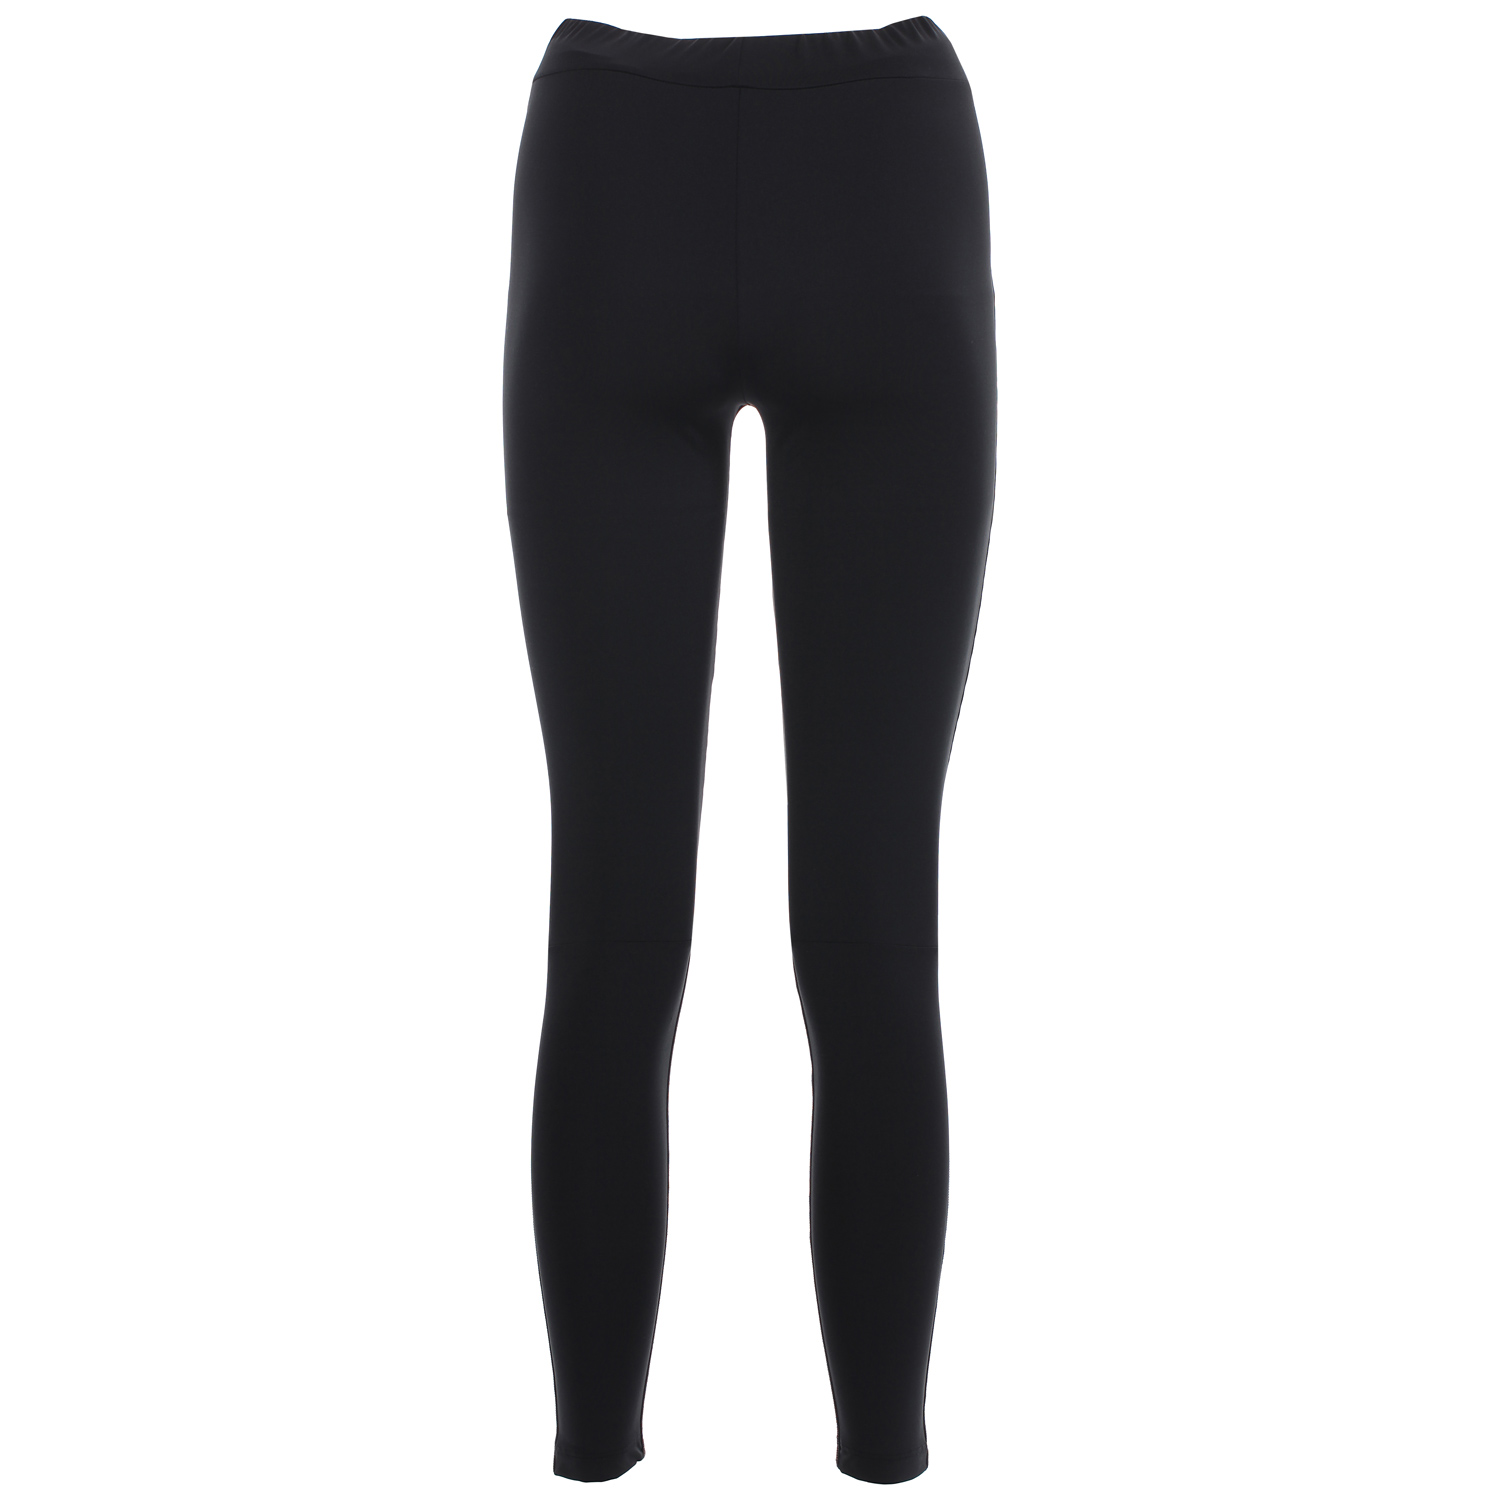 Vist Hera Leggings